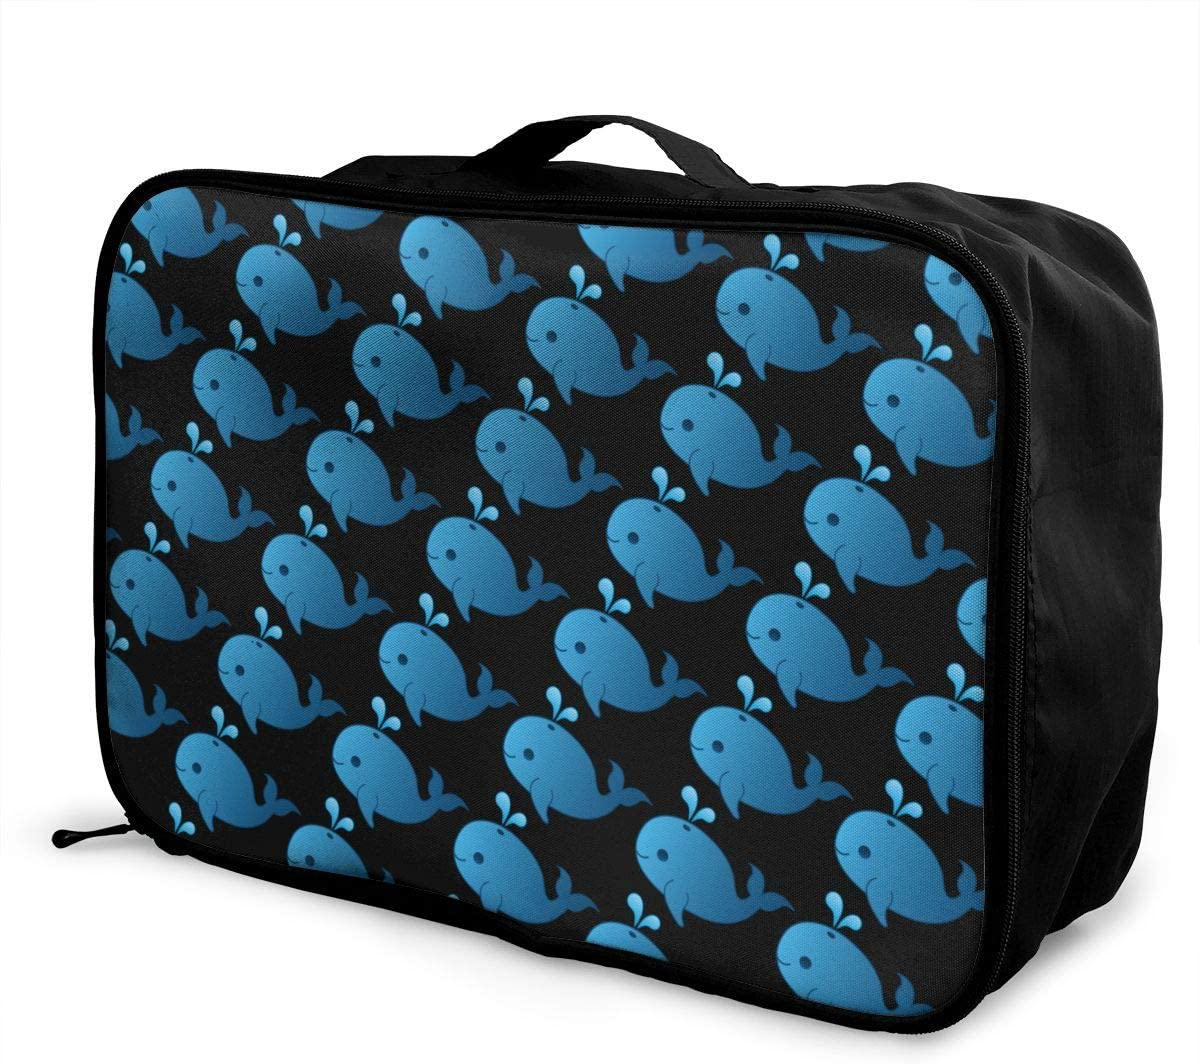 Whale Travel Carry-on Luggage Weekender Bag Overnight Tote Flight Duffel In Trolley Handle